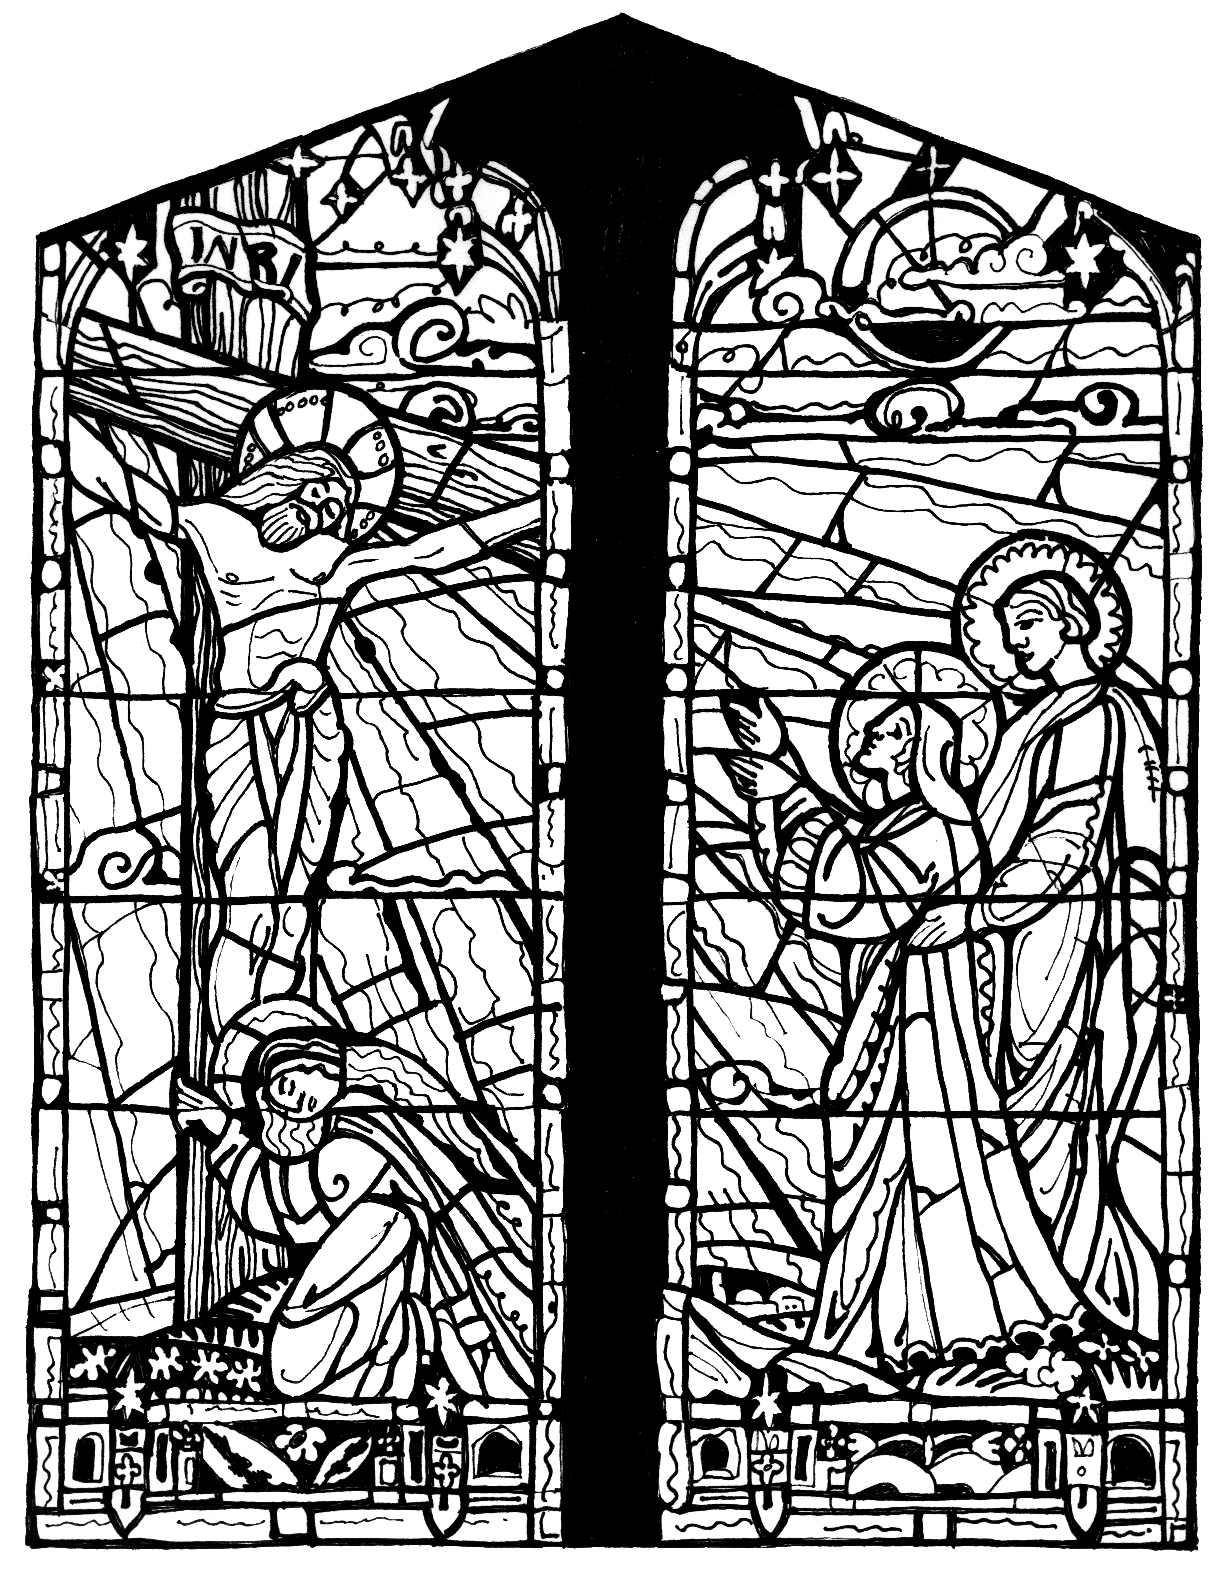 stained glass coloring pages for adults stained glass drawing art nouveau style art nouveau for stained adults pages coloring glass